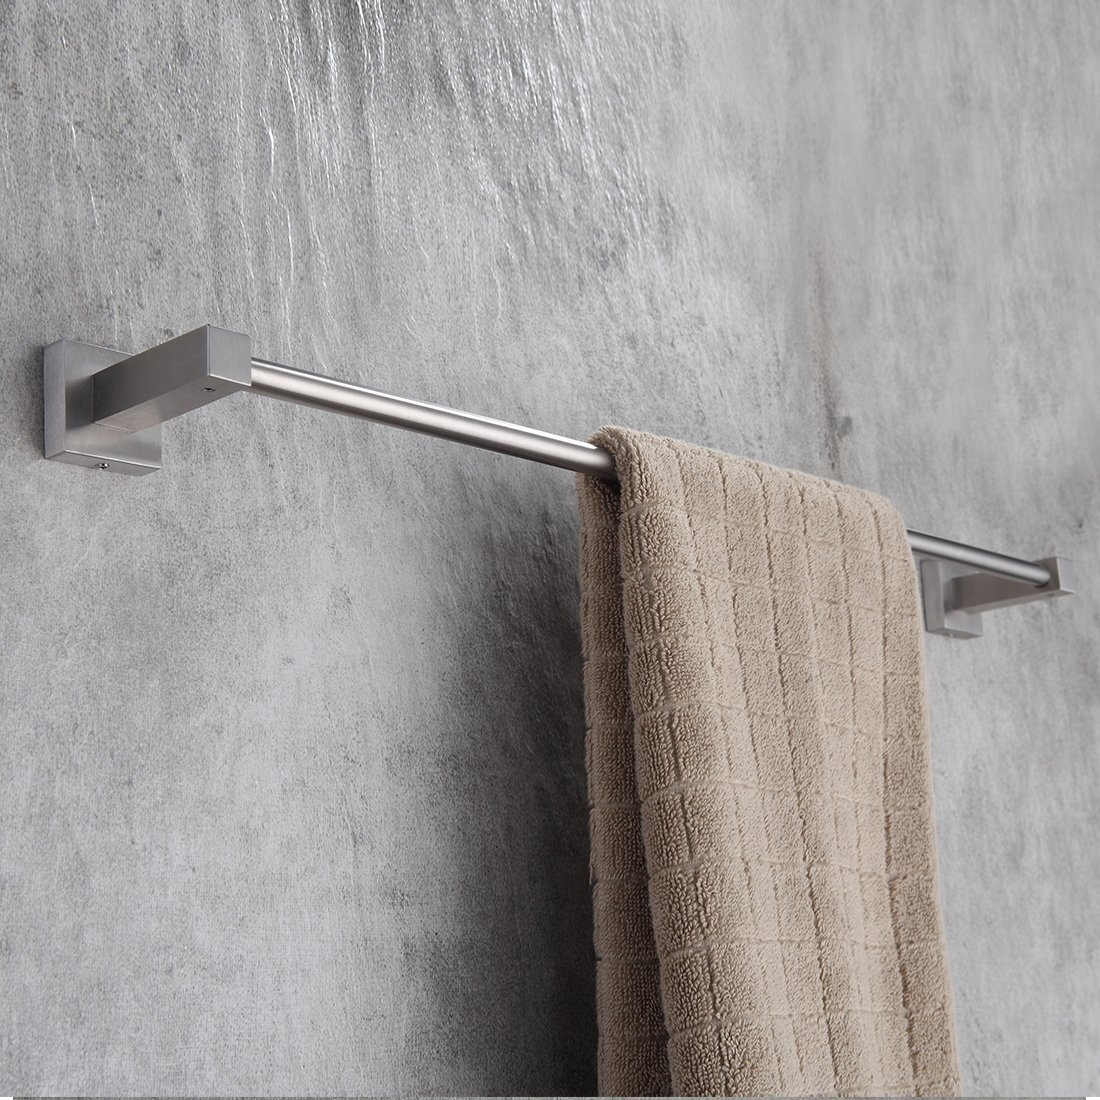 Fapully 100512S Fapully Stainless Steel 23.6-Inch Towel Bar Bathroon Towel Holder Wall Mounted,Brushed Nickel Finish